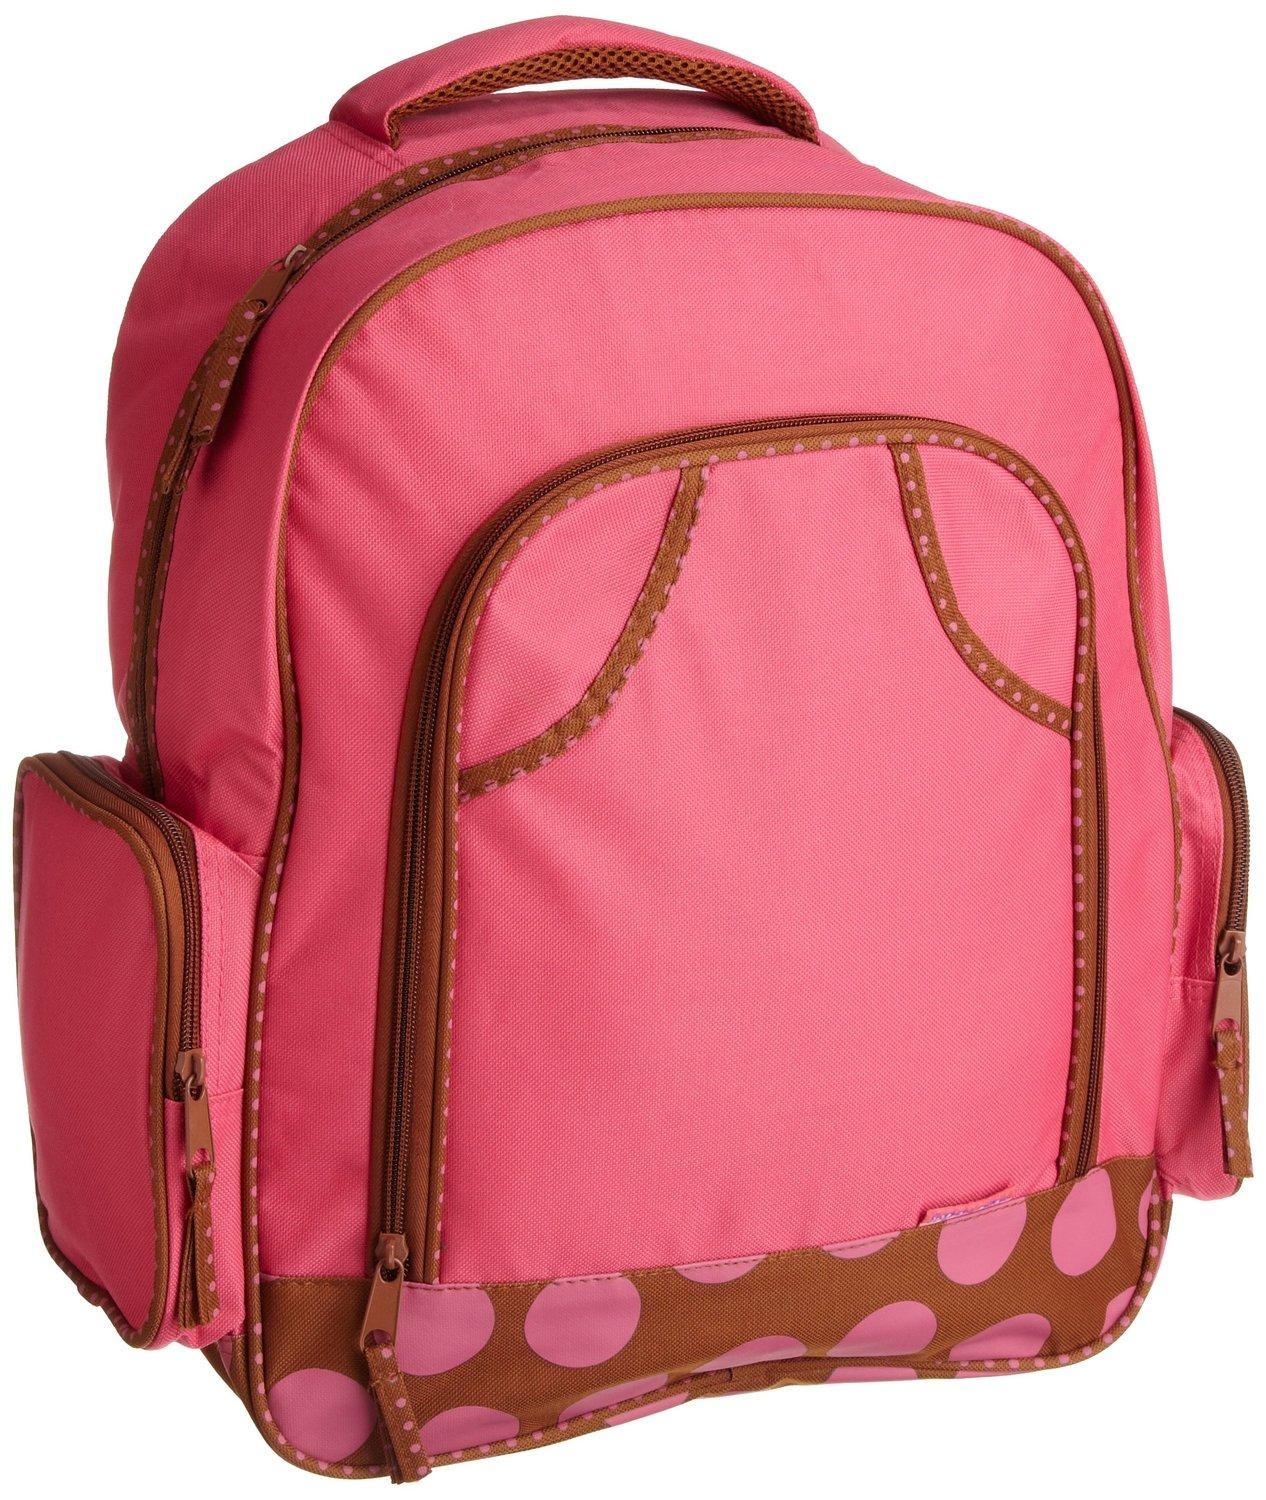 $12.84 Stephen Joseph Big Girls' Simply Stephen Joseph 17 Inch Backpack